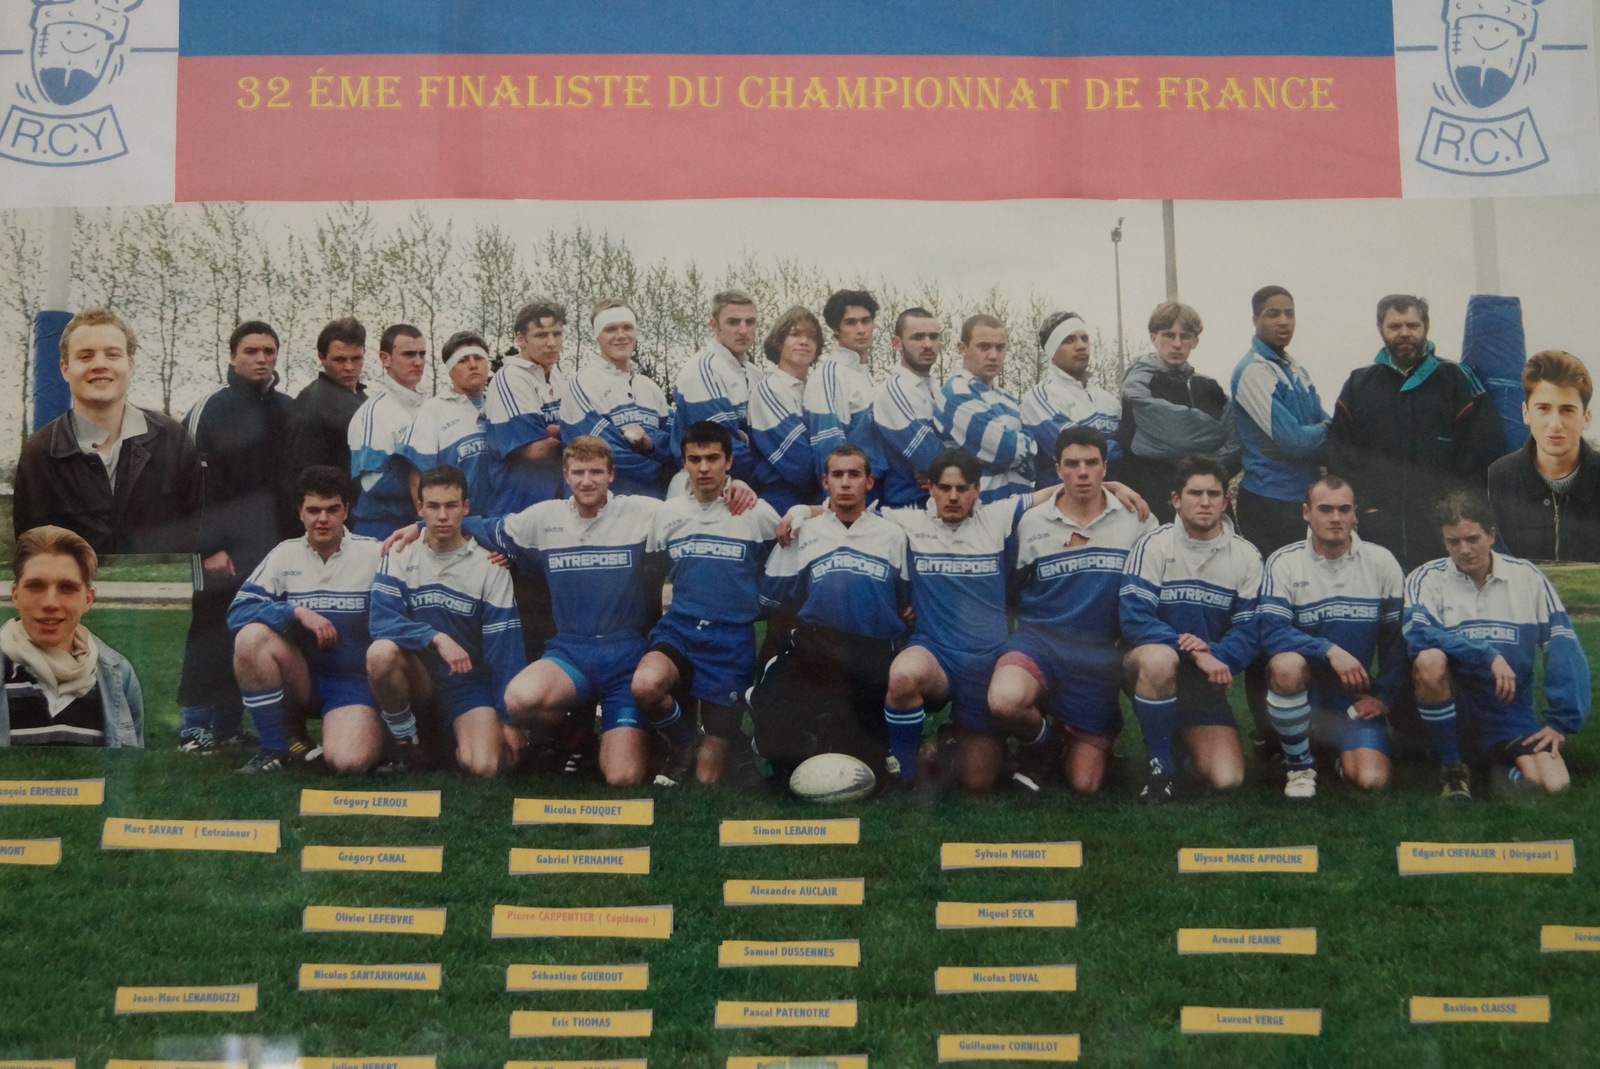 1997-98 Juniors Champions de Normandie